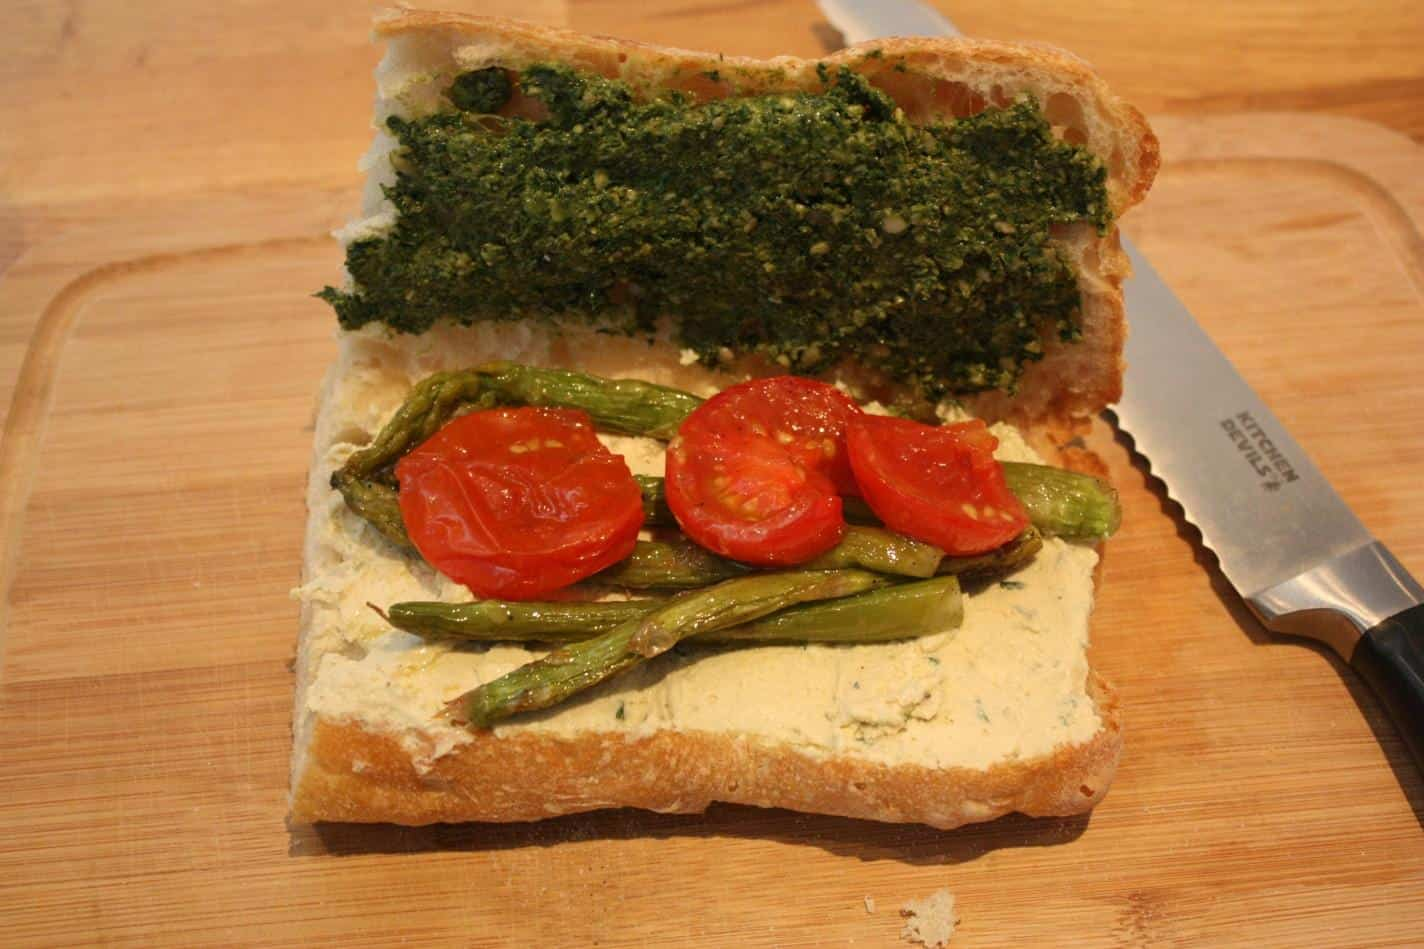 Vegan pesto, cashew cheese, roasted asparagus and tomato sandwich